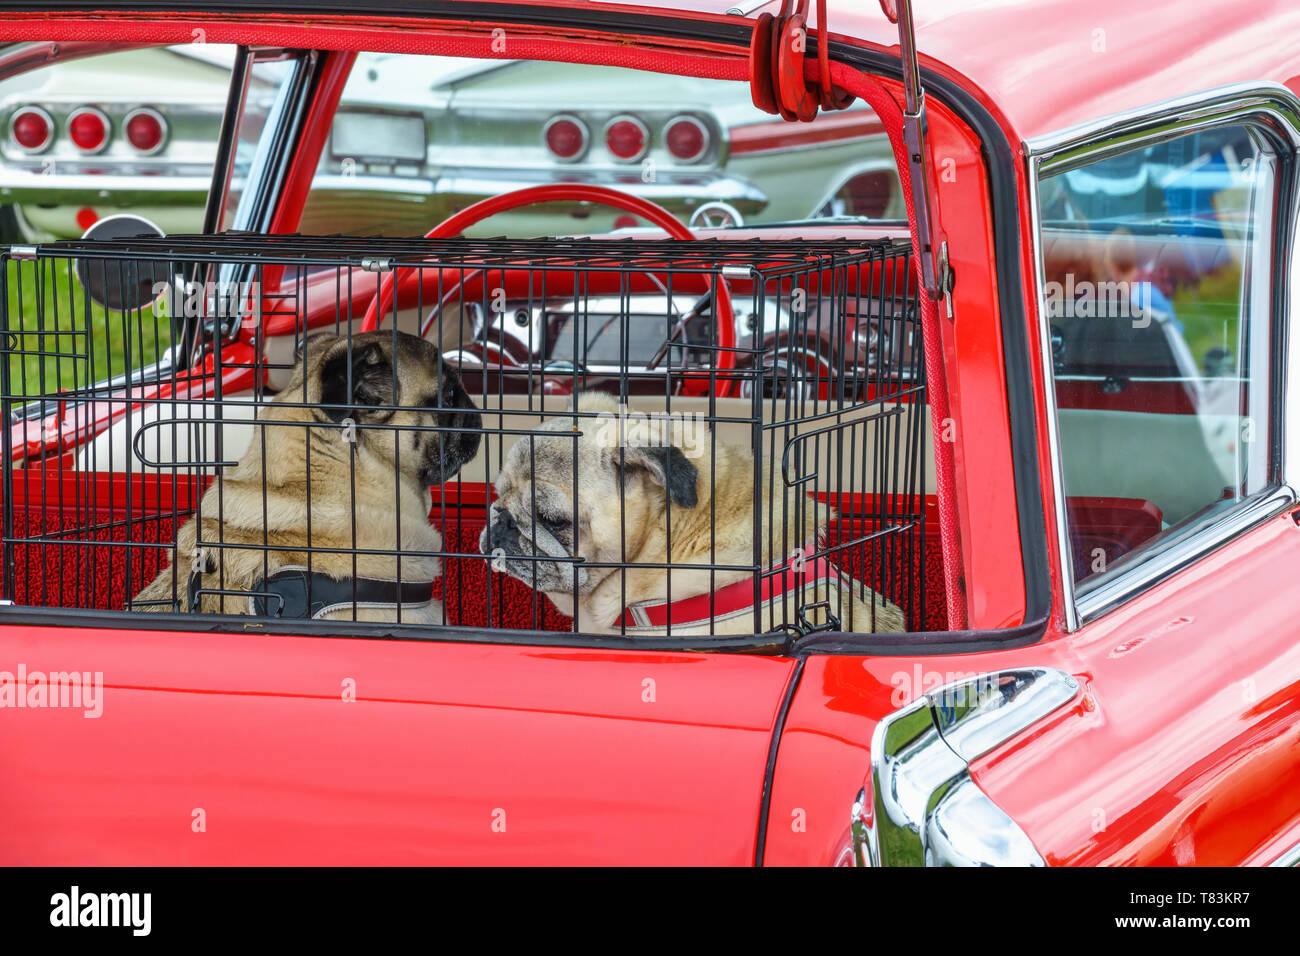 Dogs in a cage in the trunk of an old classic car - Stock Image